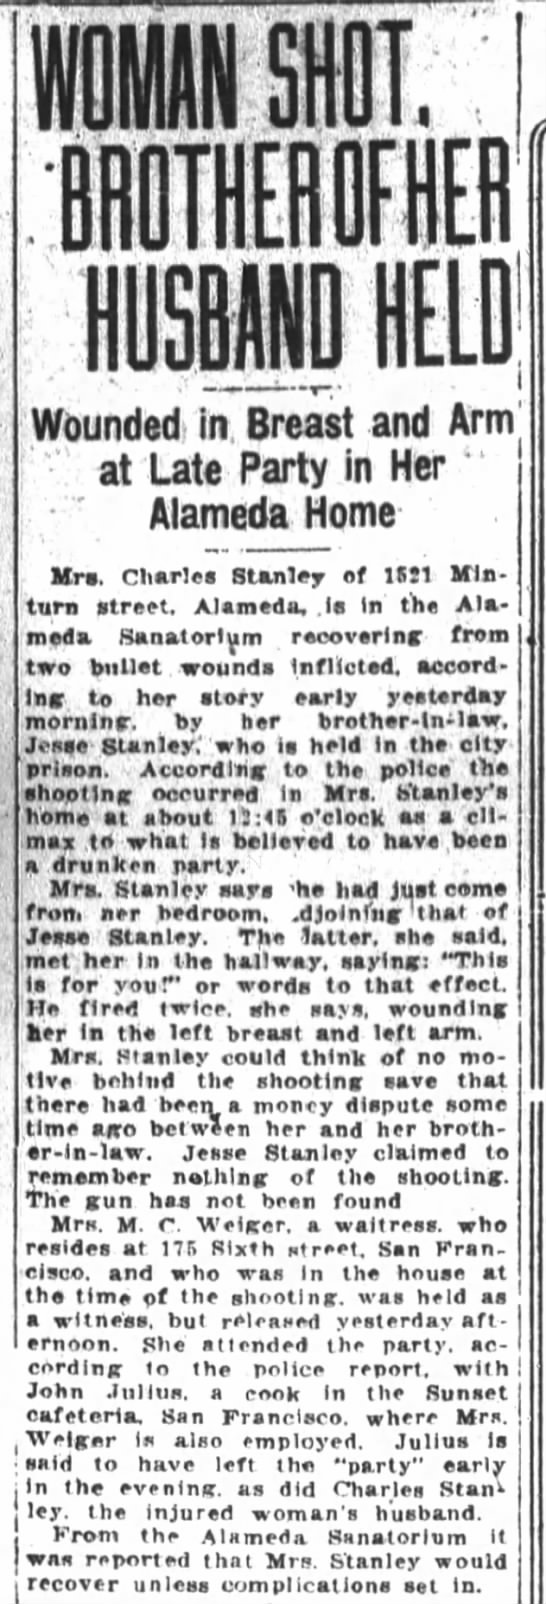 Jesse Stanley shoots wife of brother Charles Stanley (our relative?) -